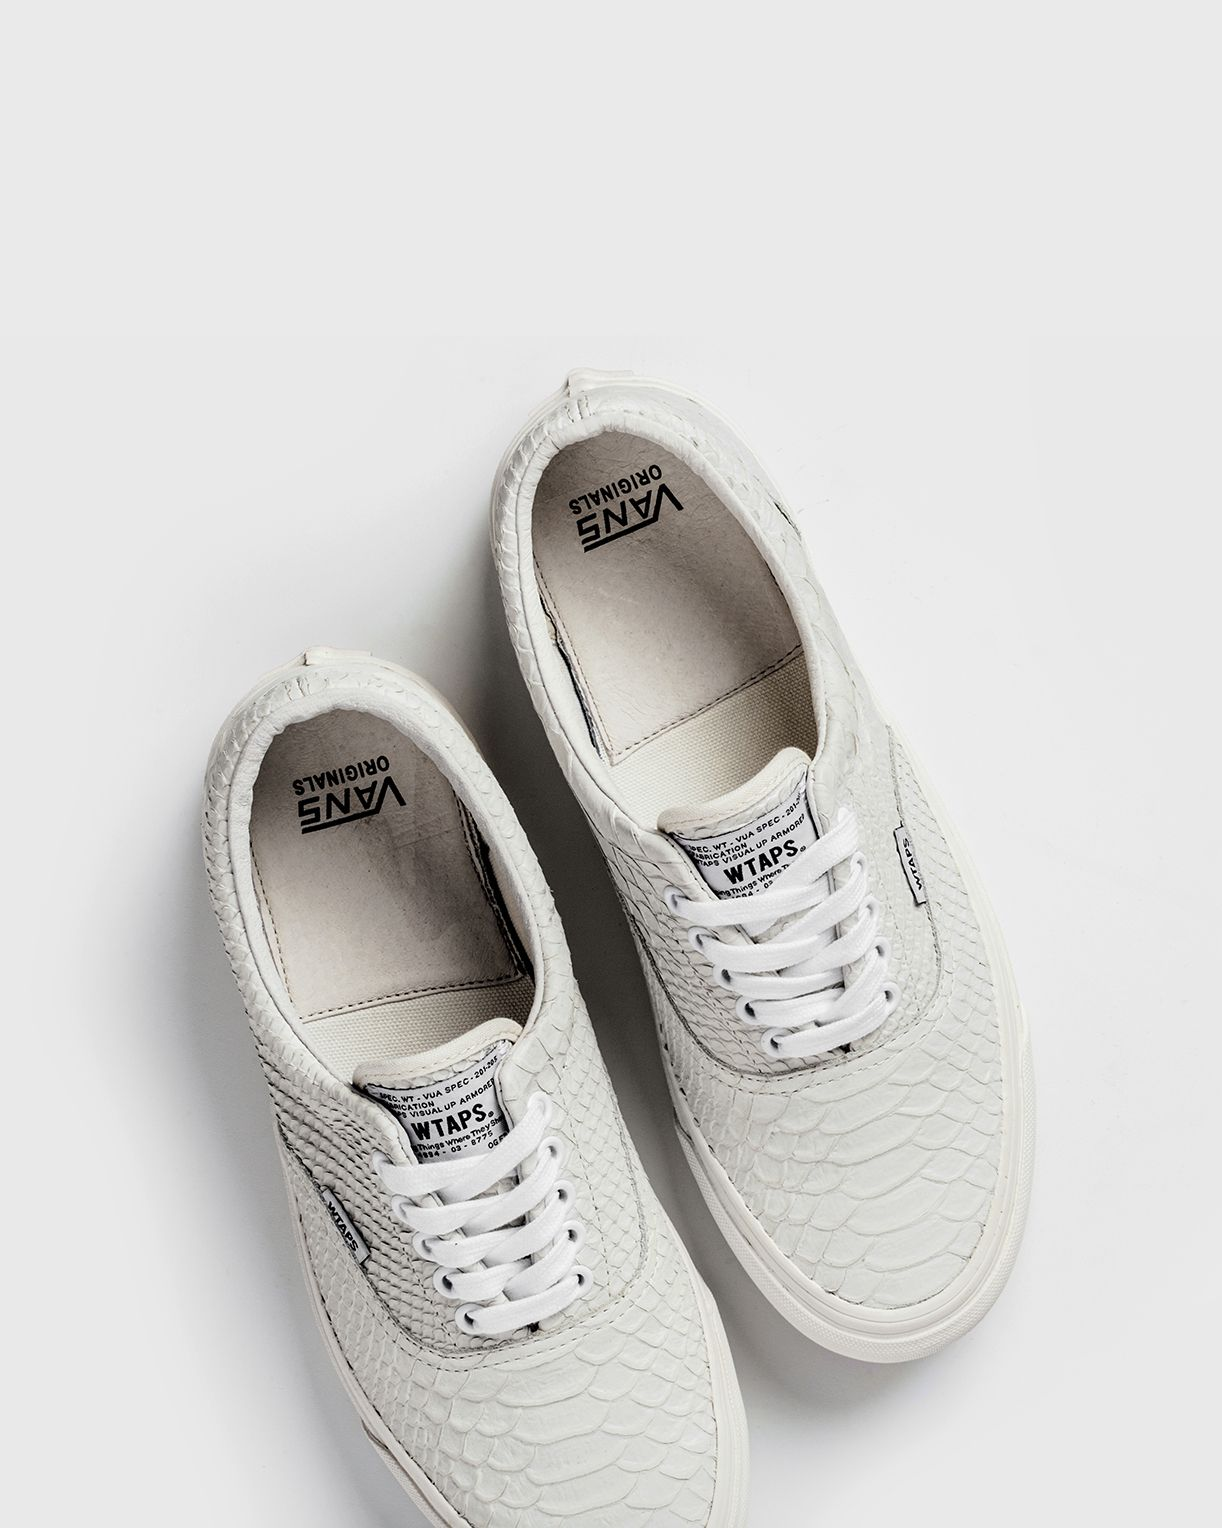 fa787e05666fc1 Vans Vault x WTAPS  Anaconda  OG Era LX  Vans  VansVault  Era  WTAPS   Fashion  Streetwear  Style  Urban  Lookbook  Photography  Footwear   Sneakers  Kicks   ...